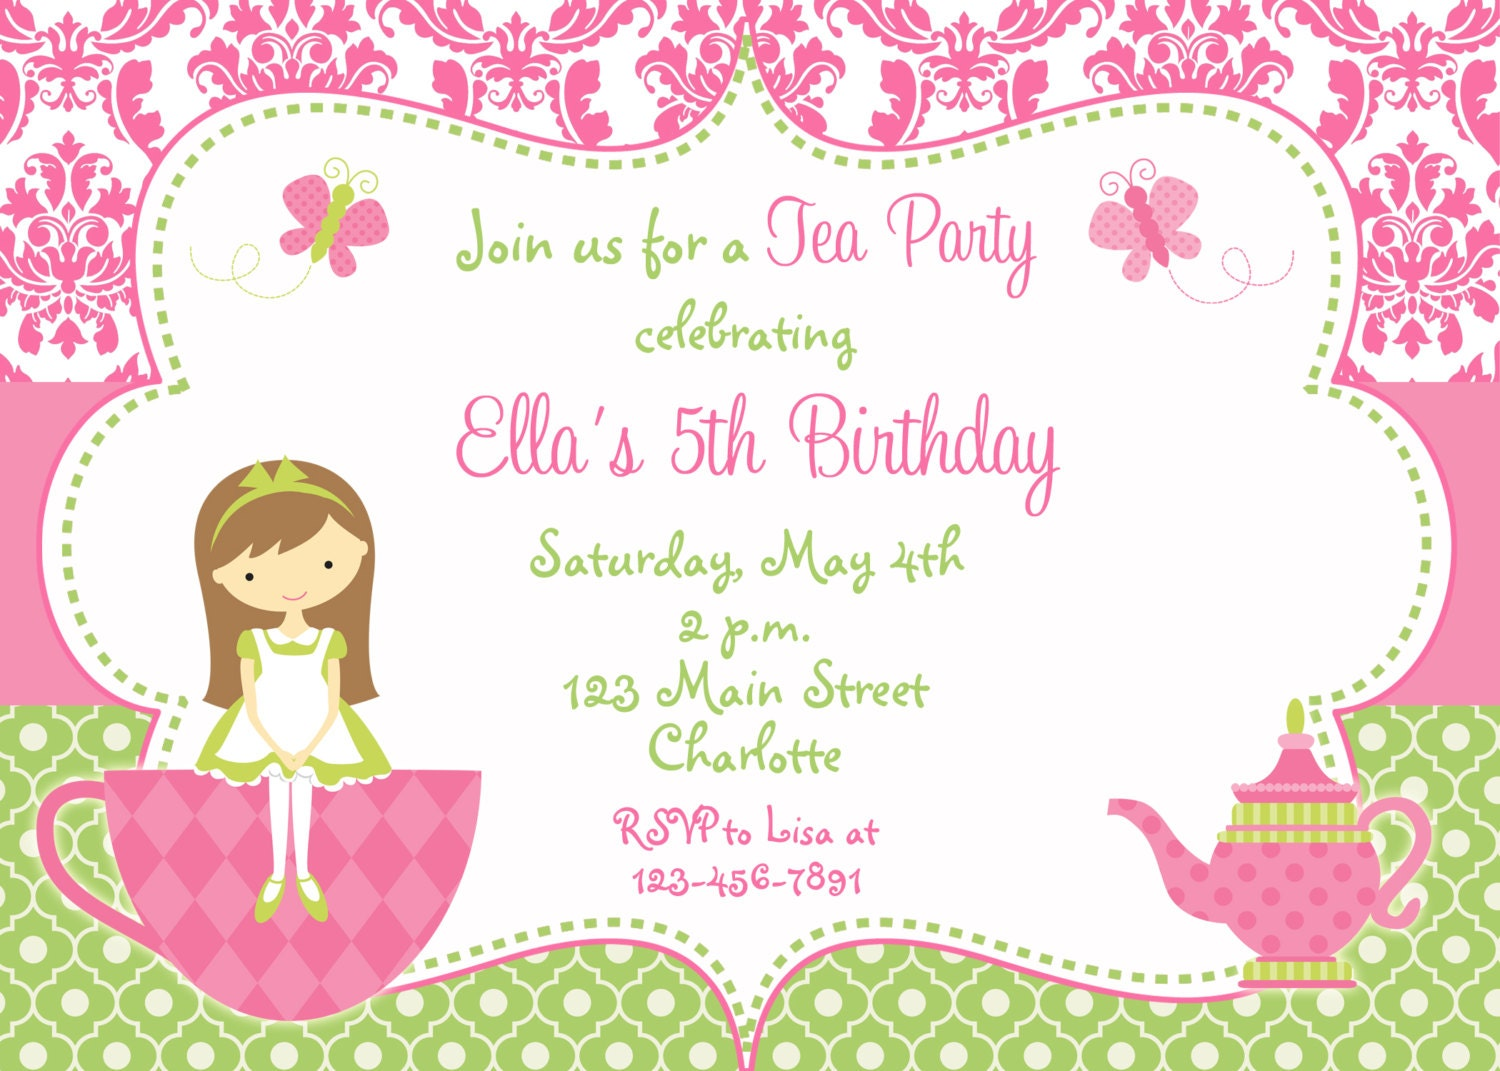 free tea party invitation template. tea party invitations, Party invitations